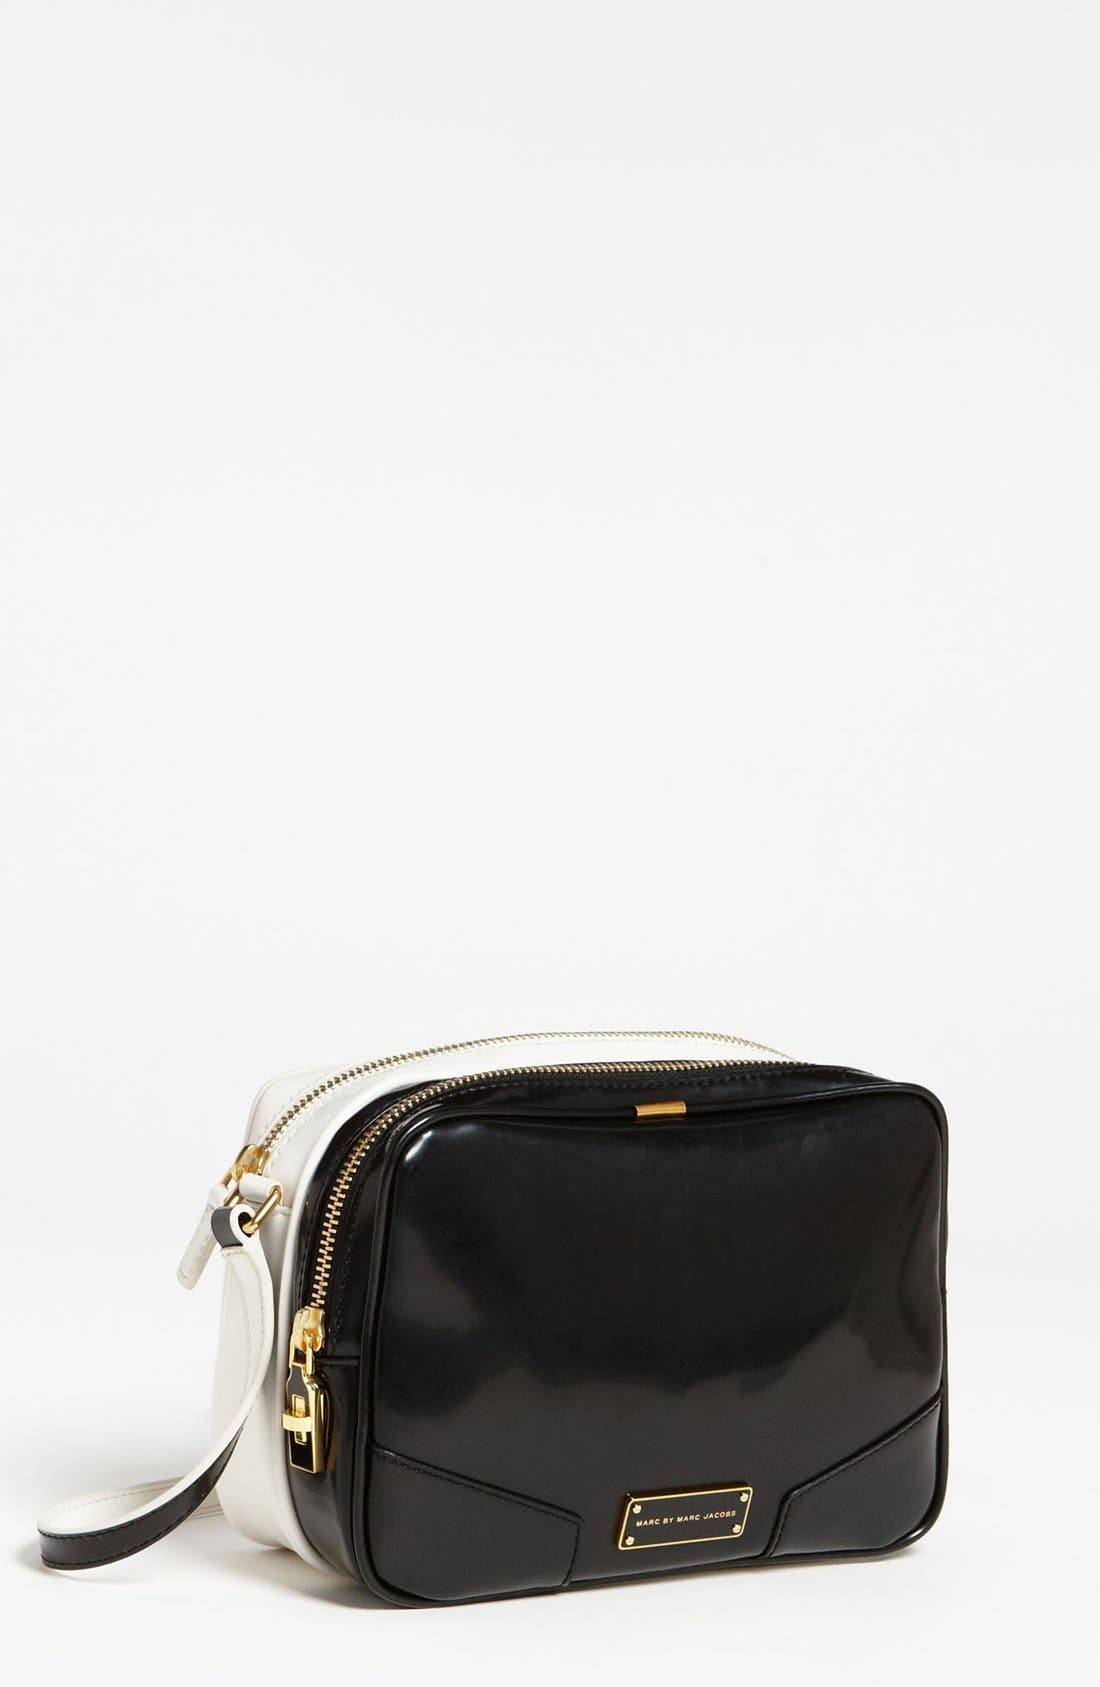 Alternate Image 1 Selected - MARC BY MARC JACOBS 'Alley Katz - Colorblocked Bunny' Crossbody Bag